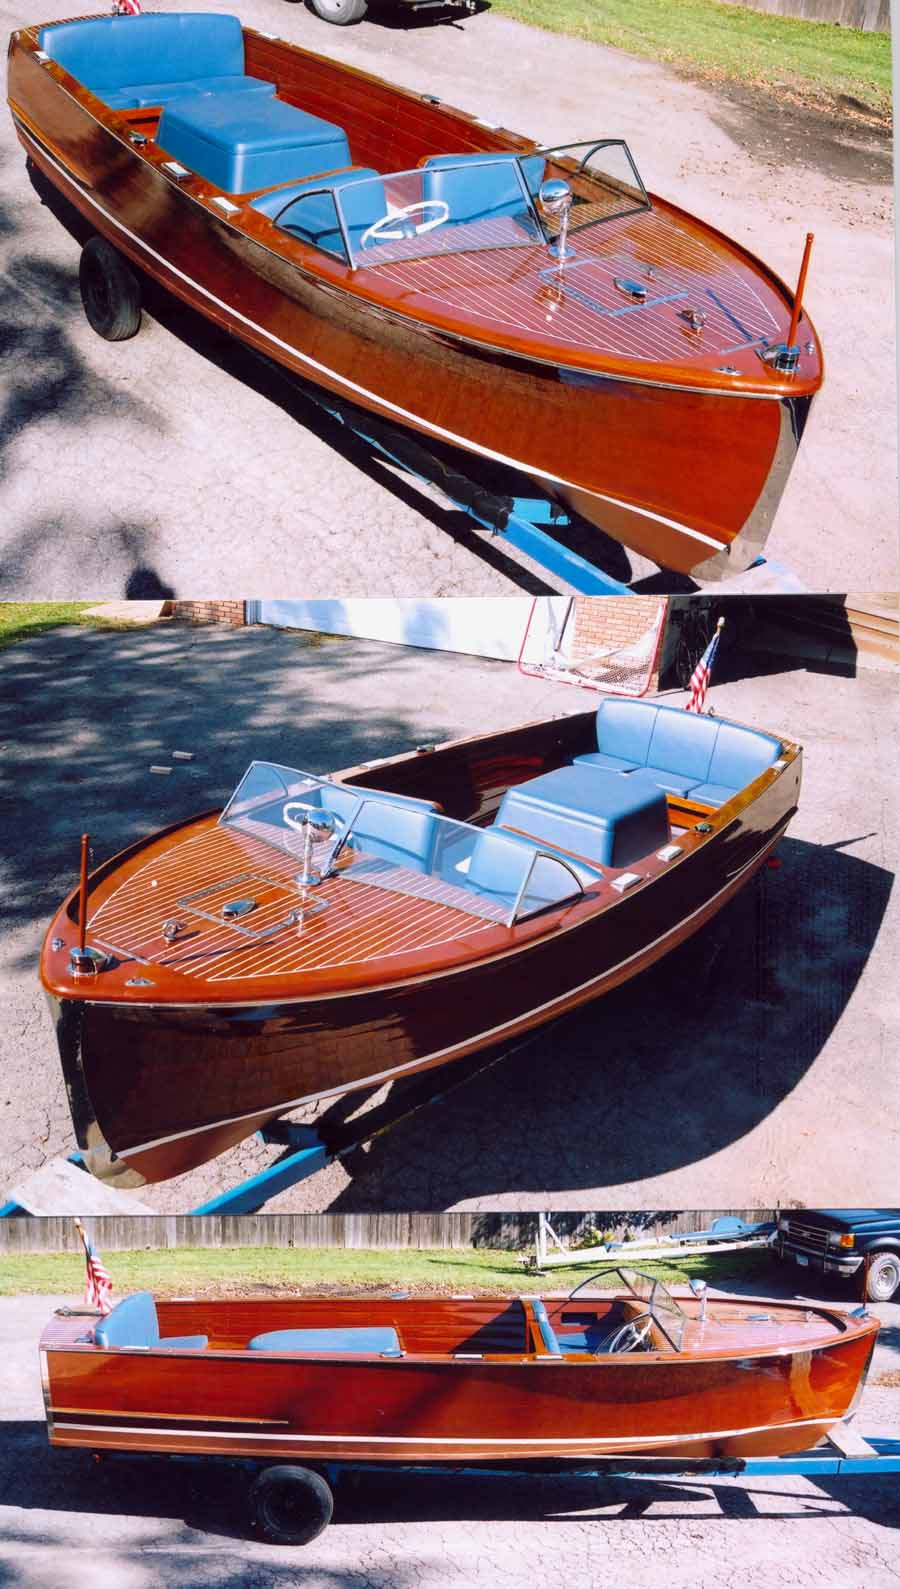 classic boats - 1950 22' Chris Craft Sportsman